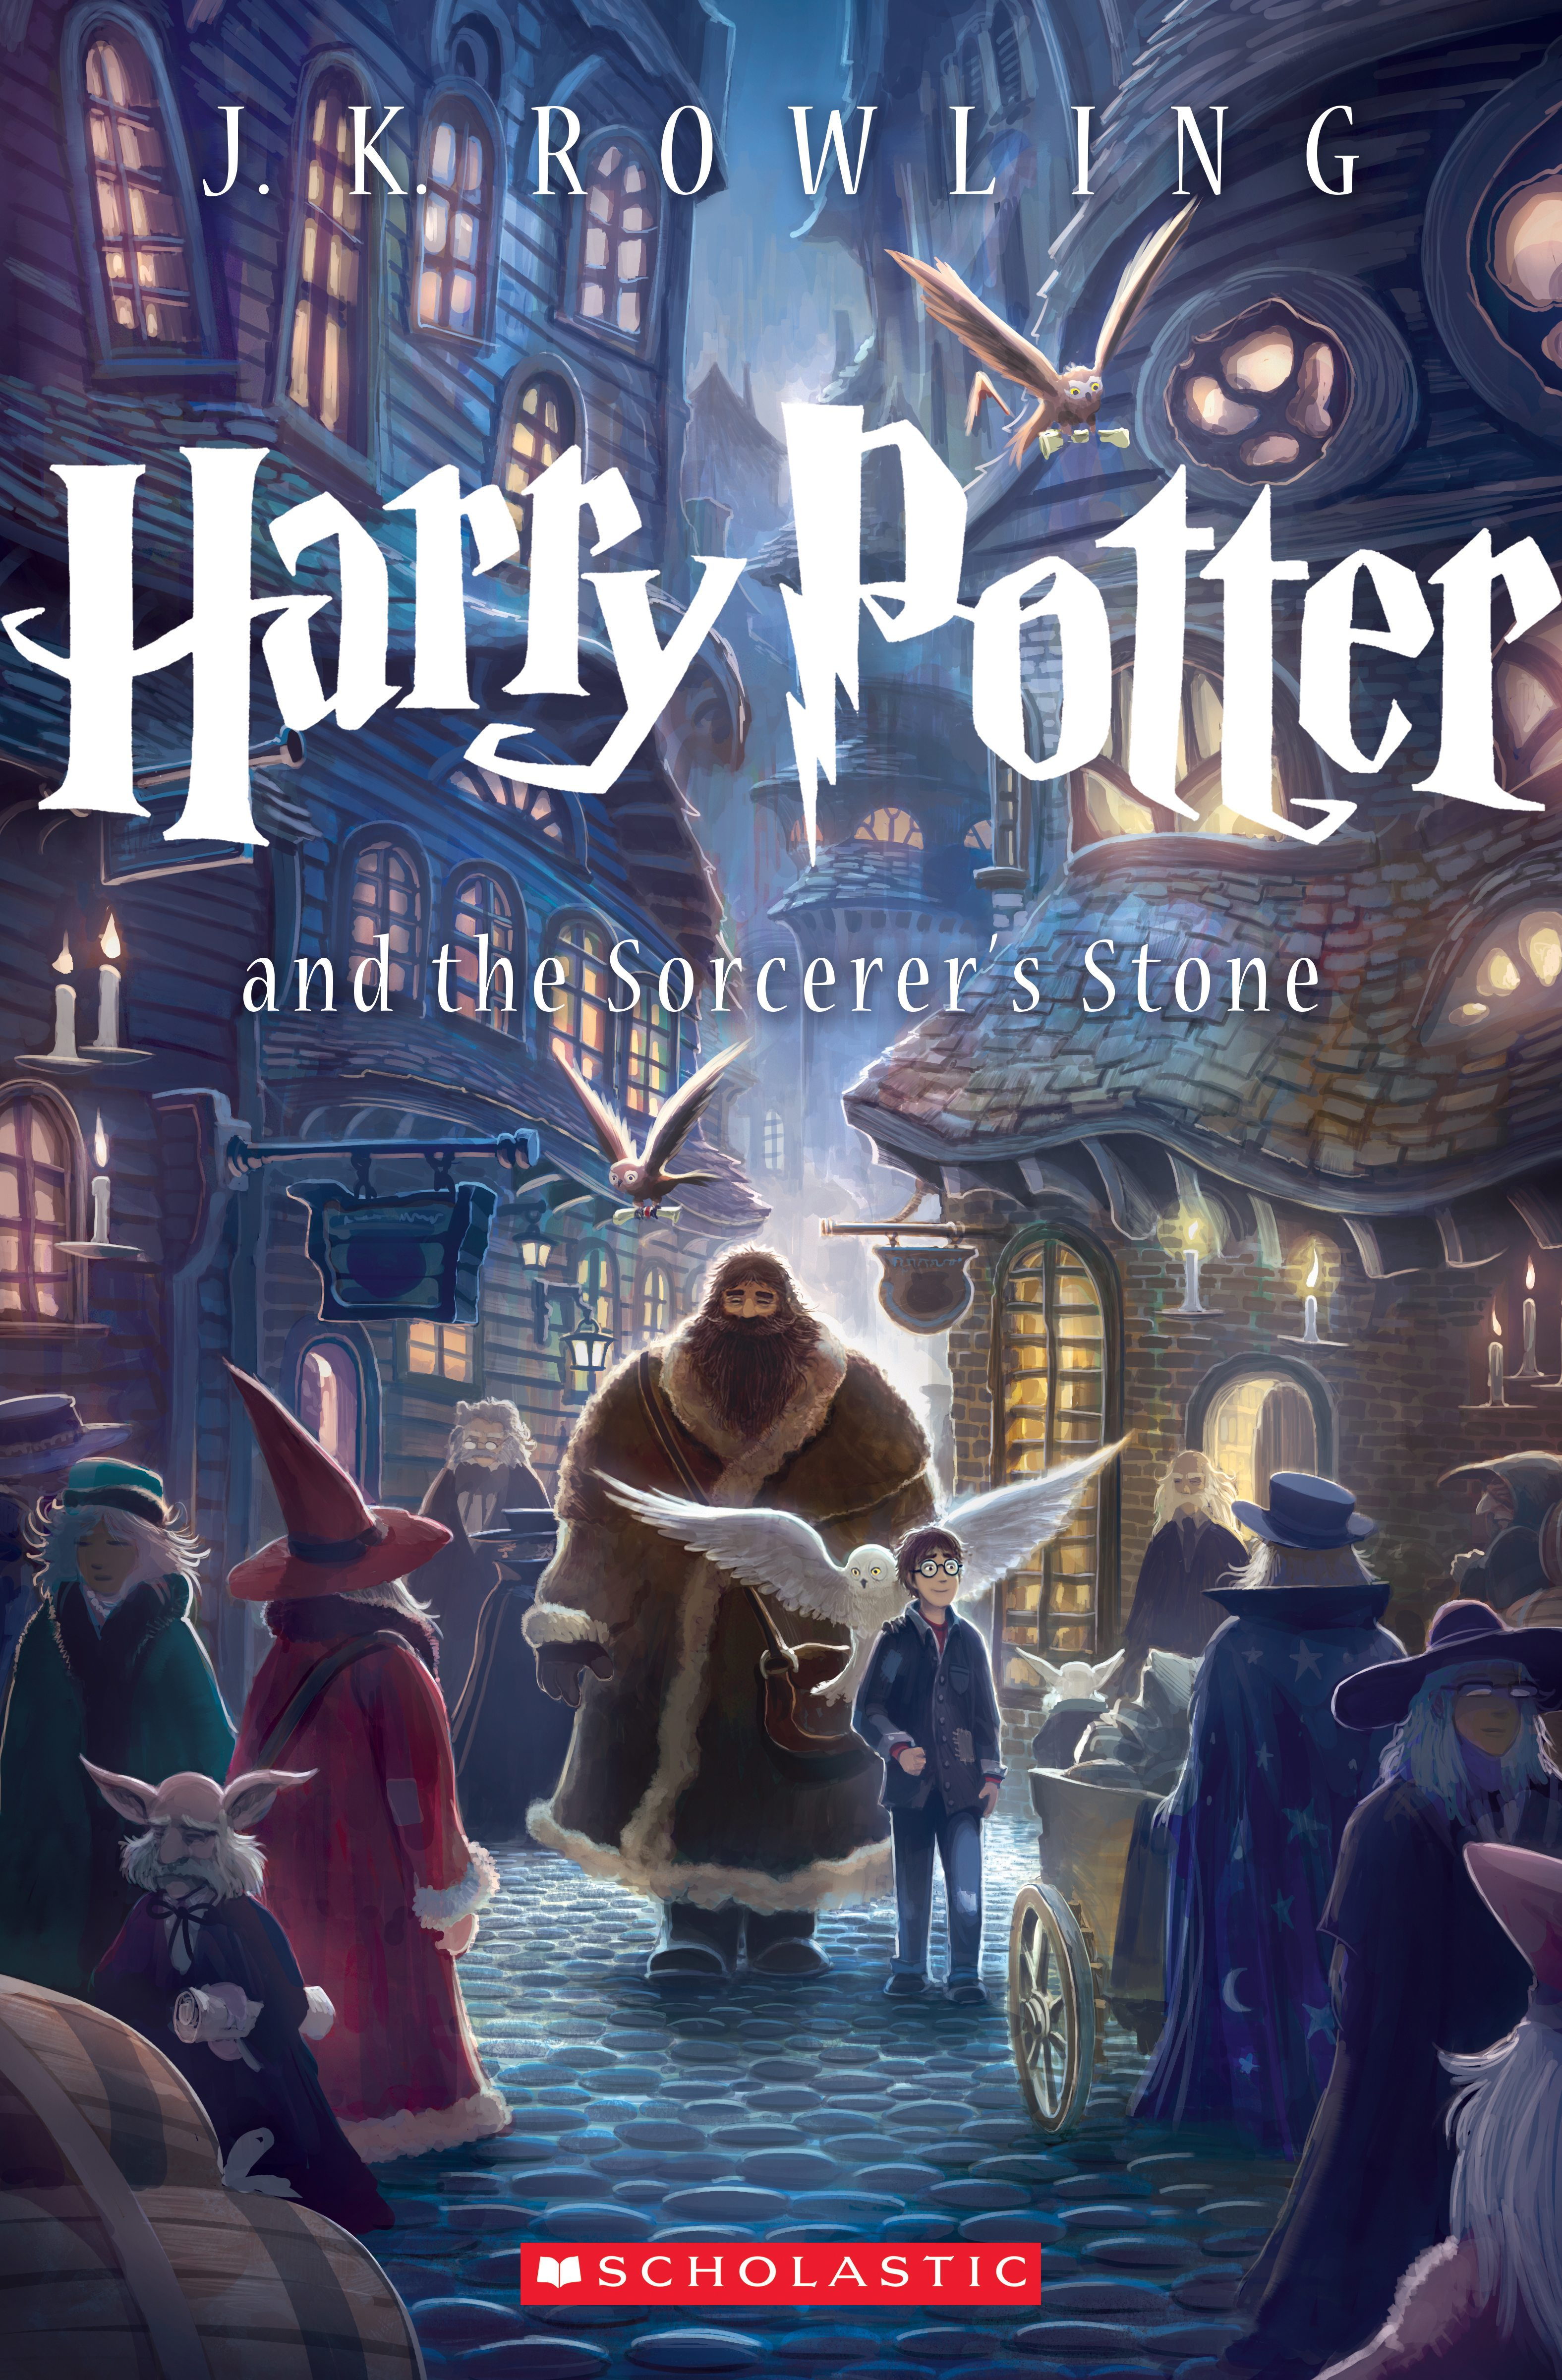 Harry Potter Book Images ~ Final harry potter cover reveal today at scholastic store